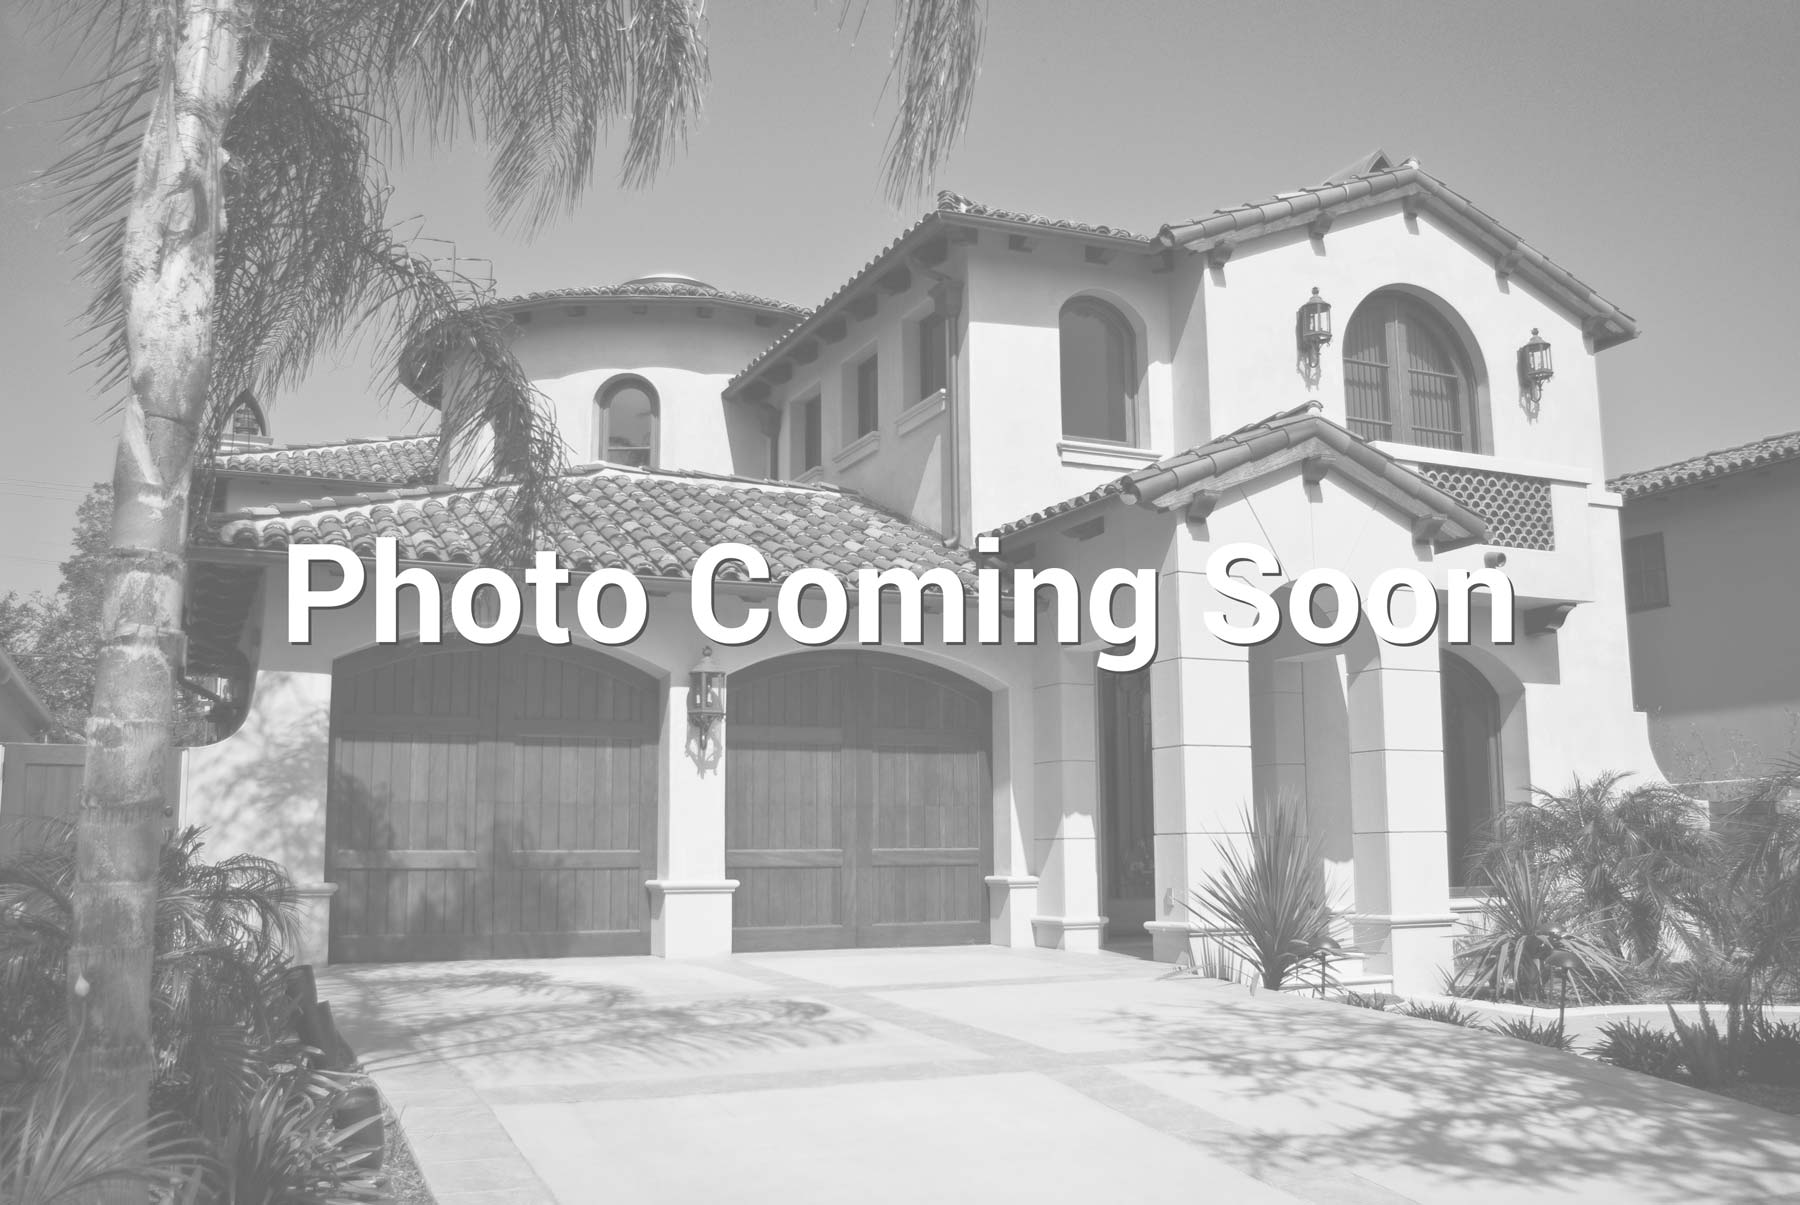 $499,900 - 3Br/2Ba -  for Sale in Rancho De La Nacion, National City